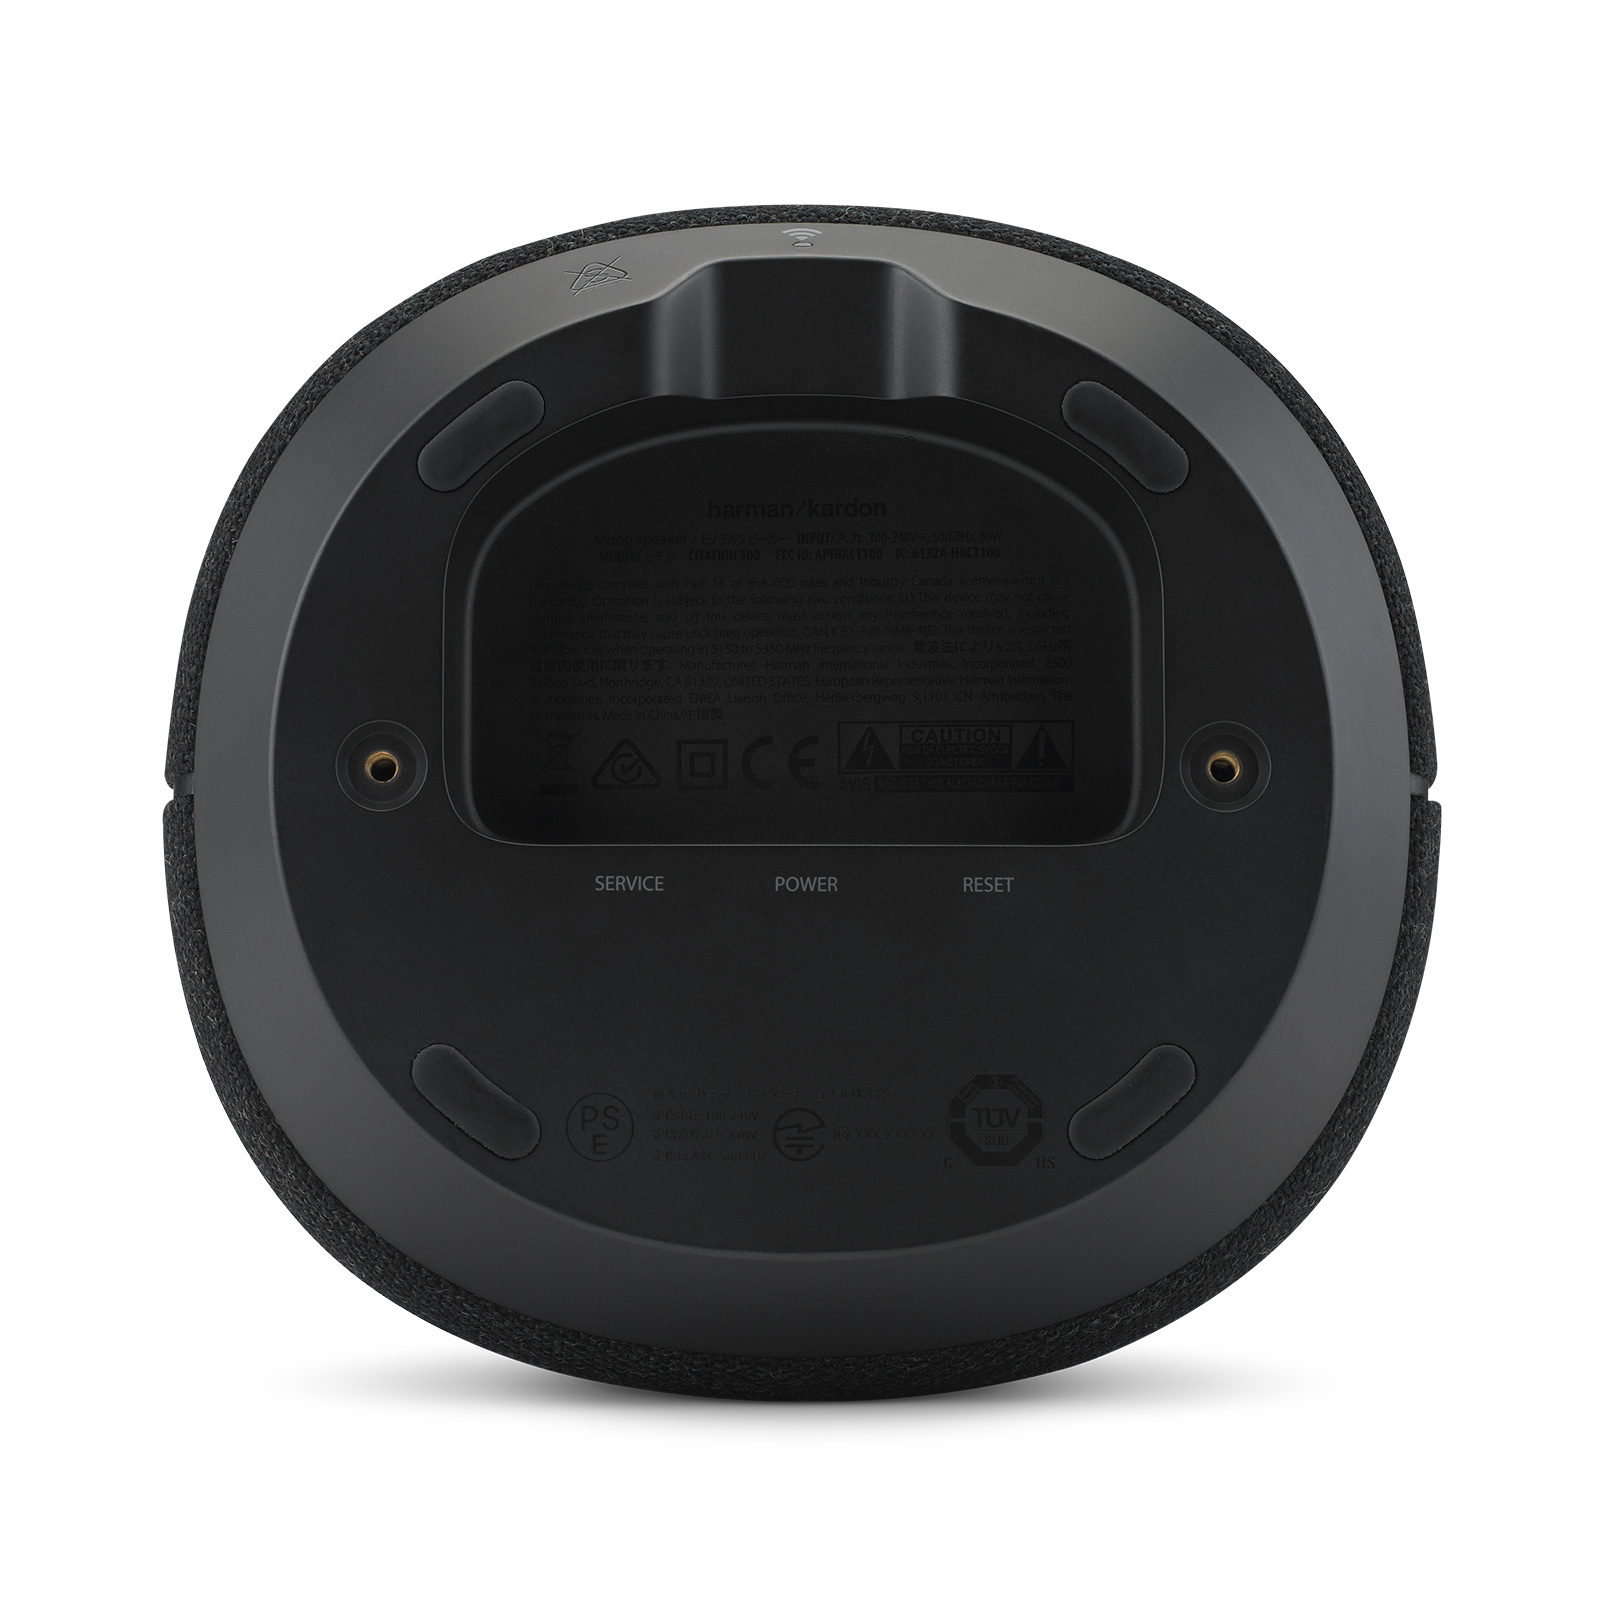 Harman Kardon Citation 100 - Black - The smallest, smartest home speaker with impactful sound - Detailshot 3